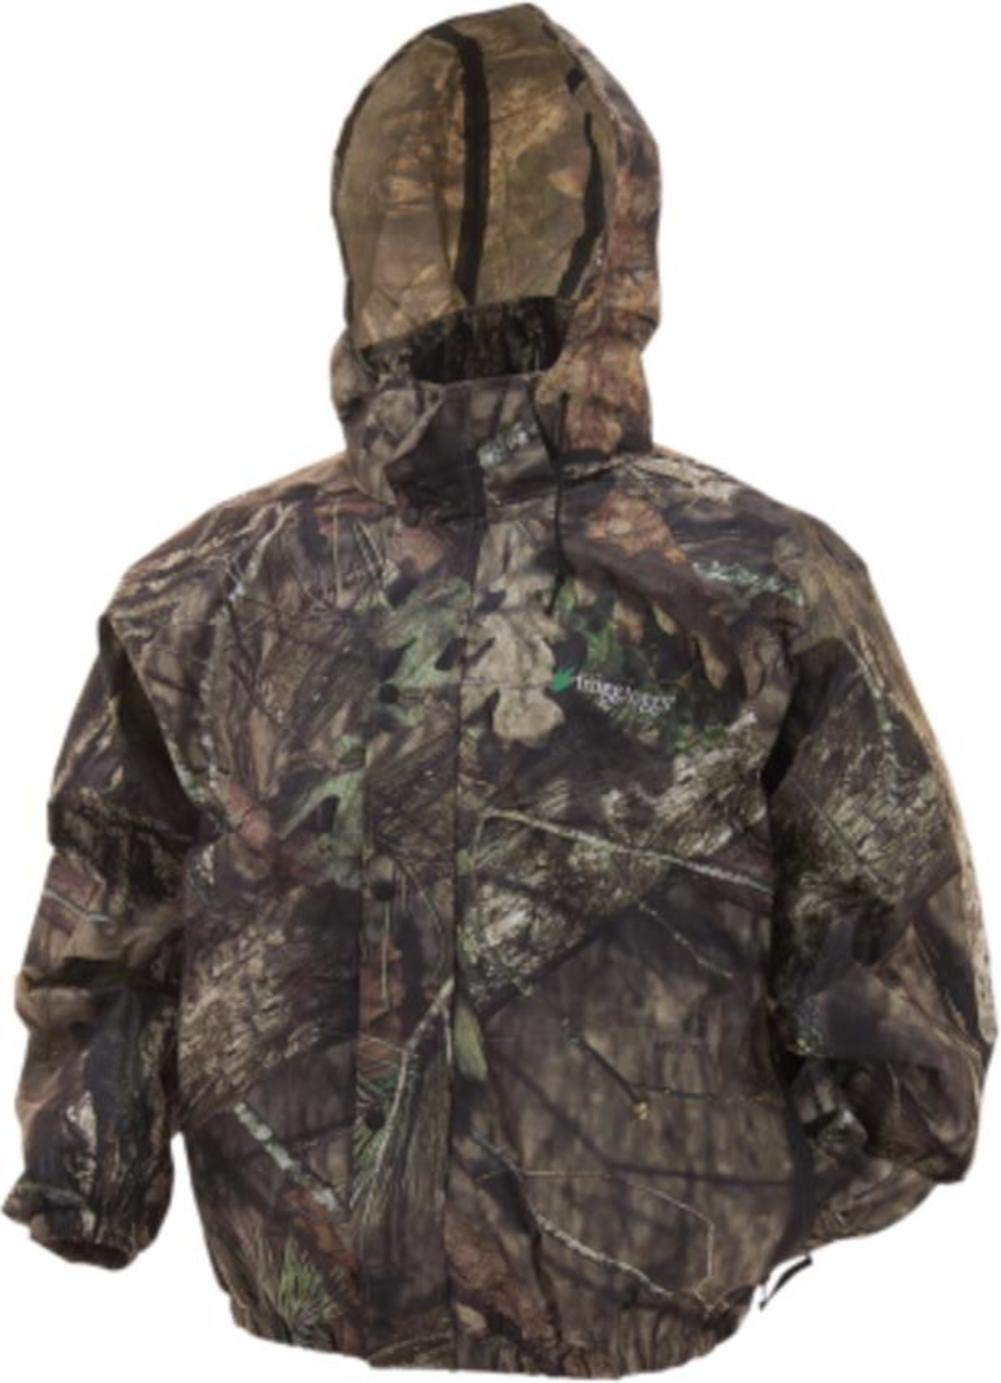 Frogg Toggs Pro Action Rain Jacket Mossy Oak Country 3Xlarge PA63102-623X